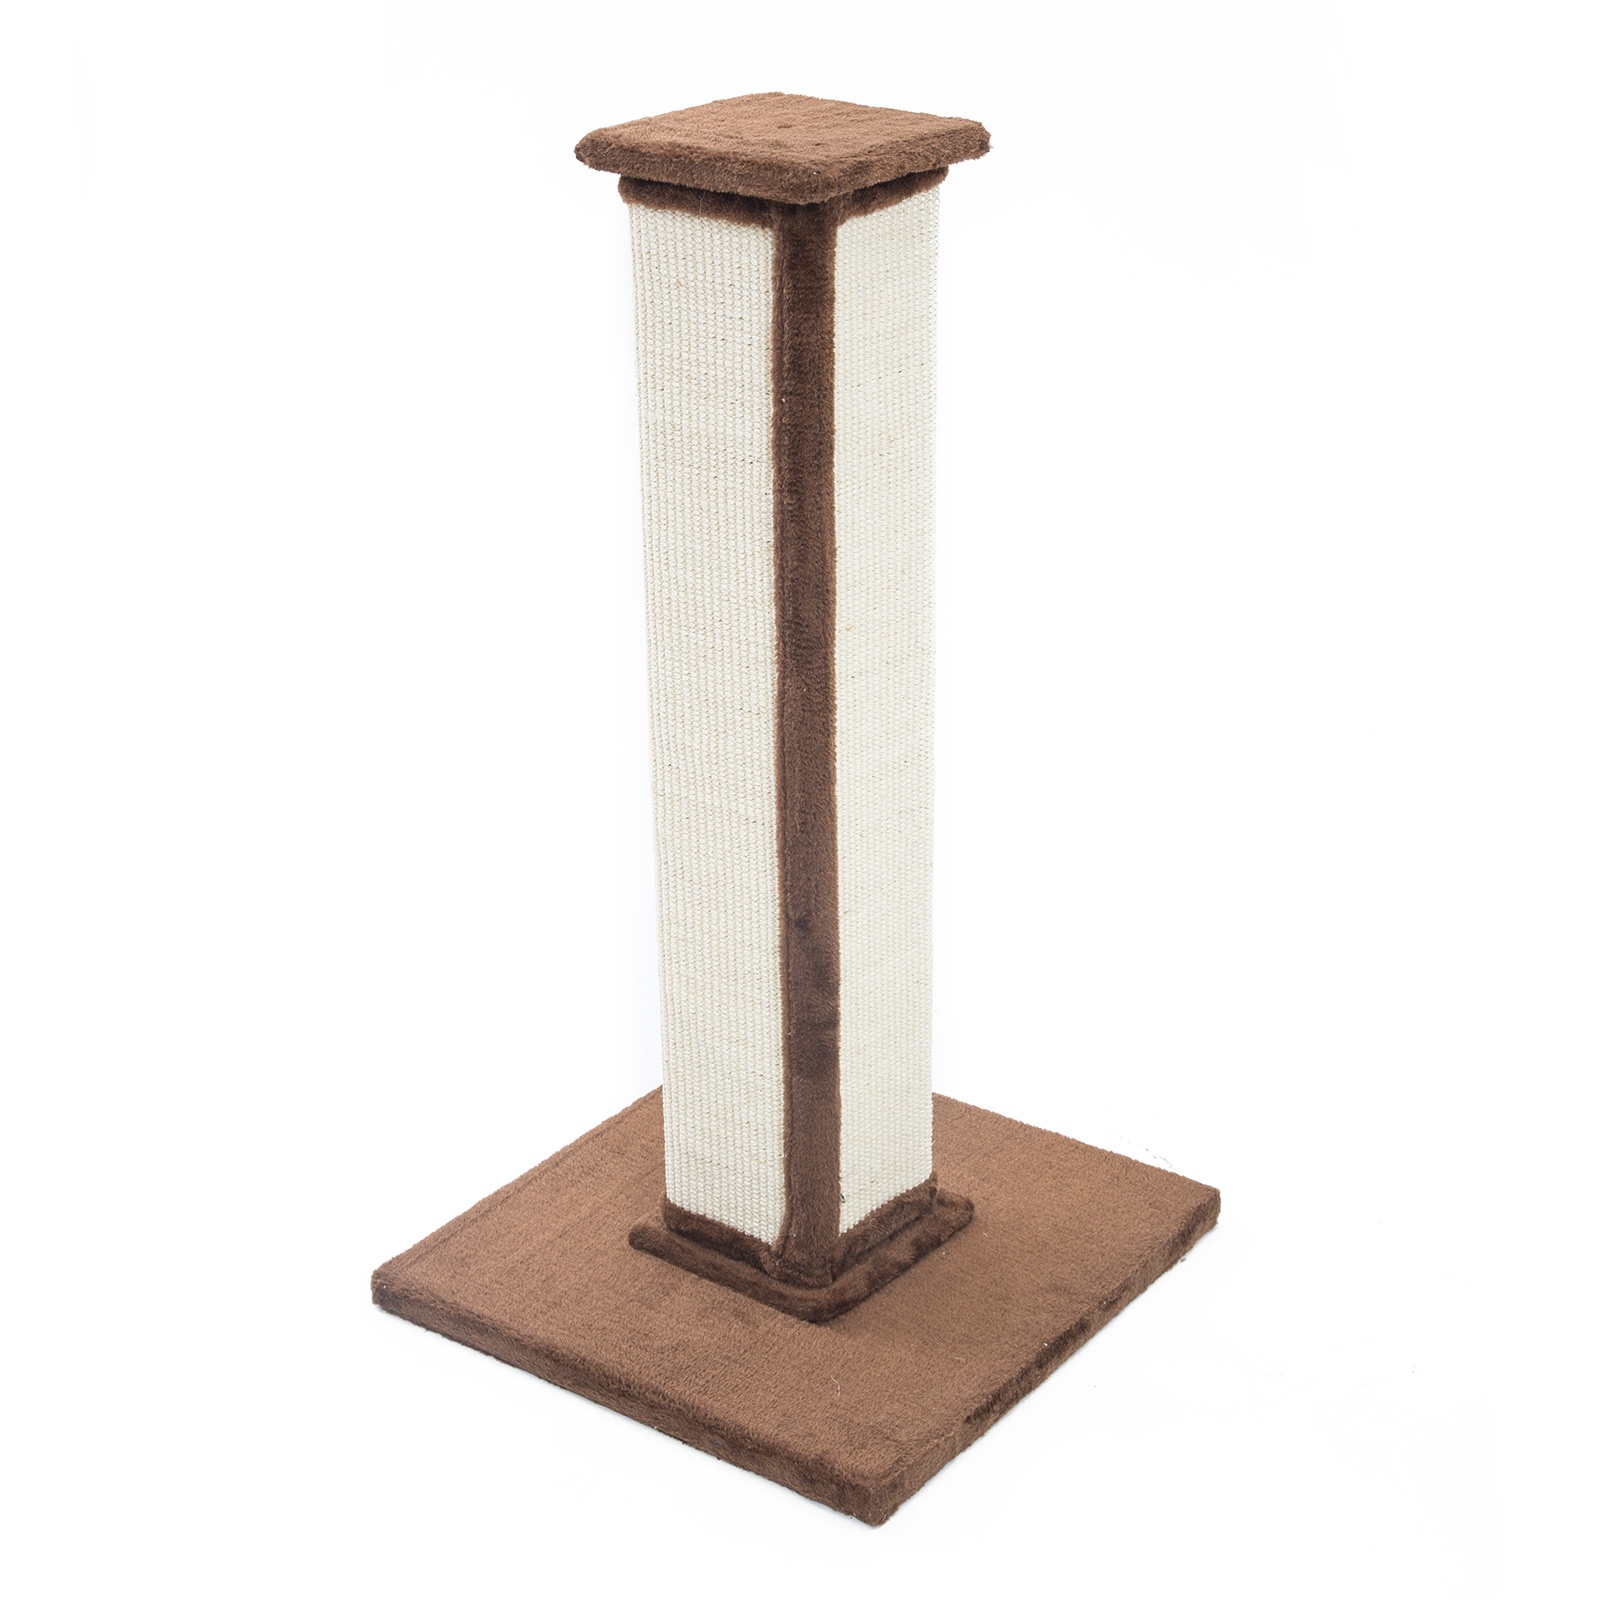 92cm Cat Tree Scratcher NOPPO - BROWN